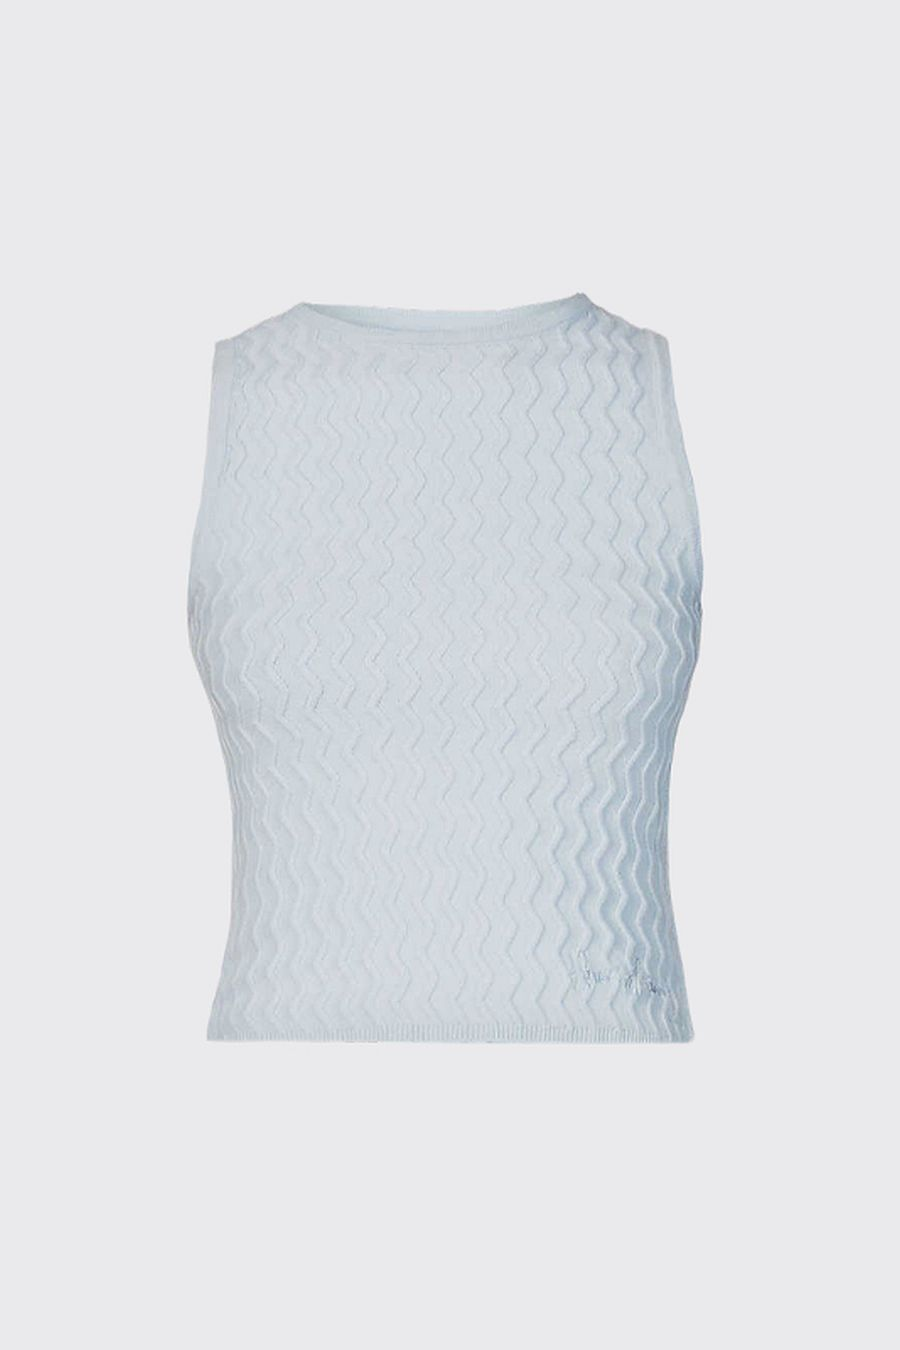 House Of Sunny Pacific Vest